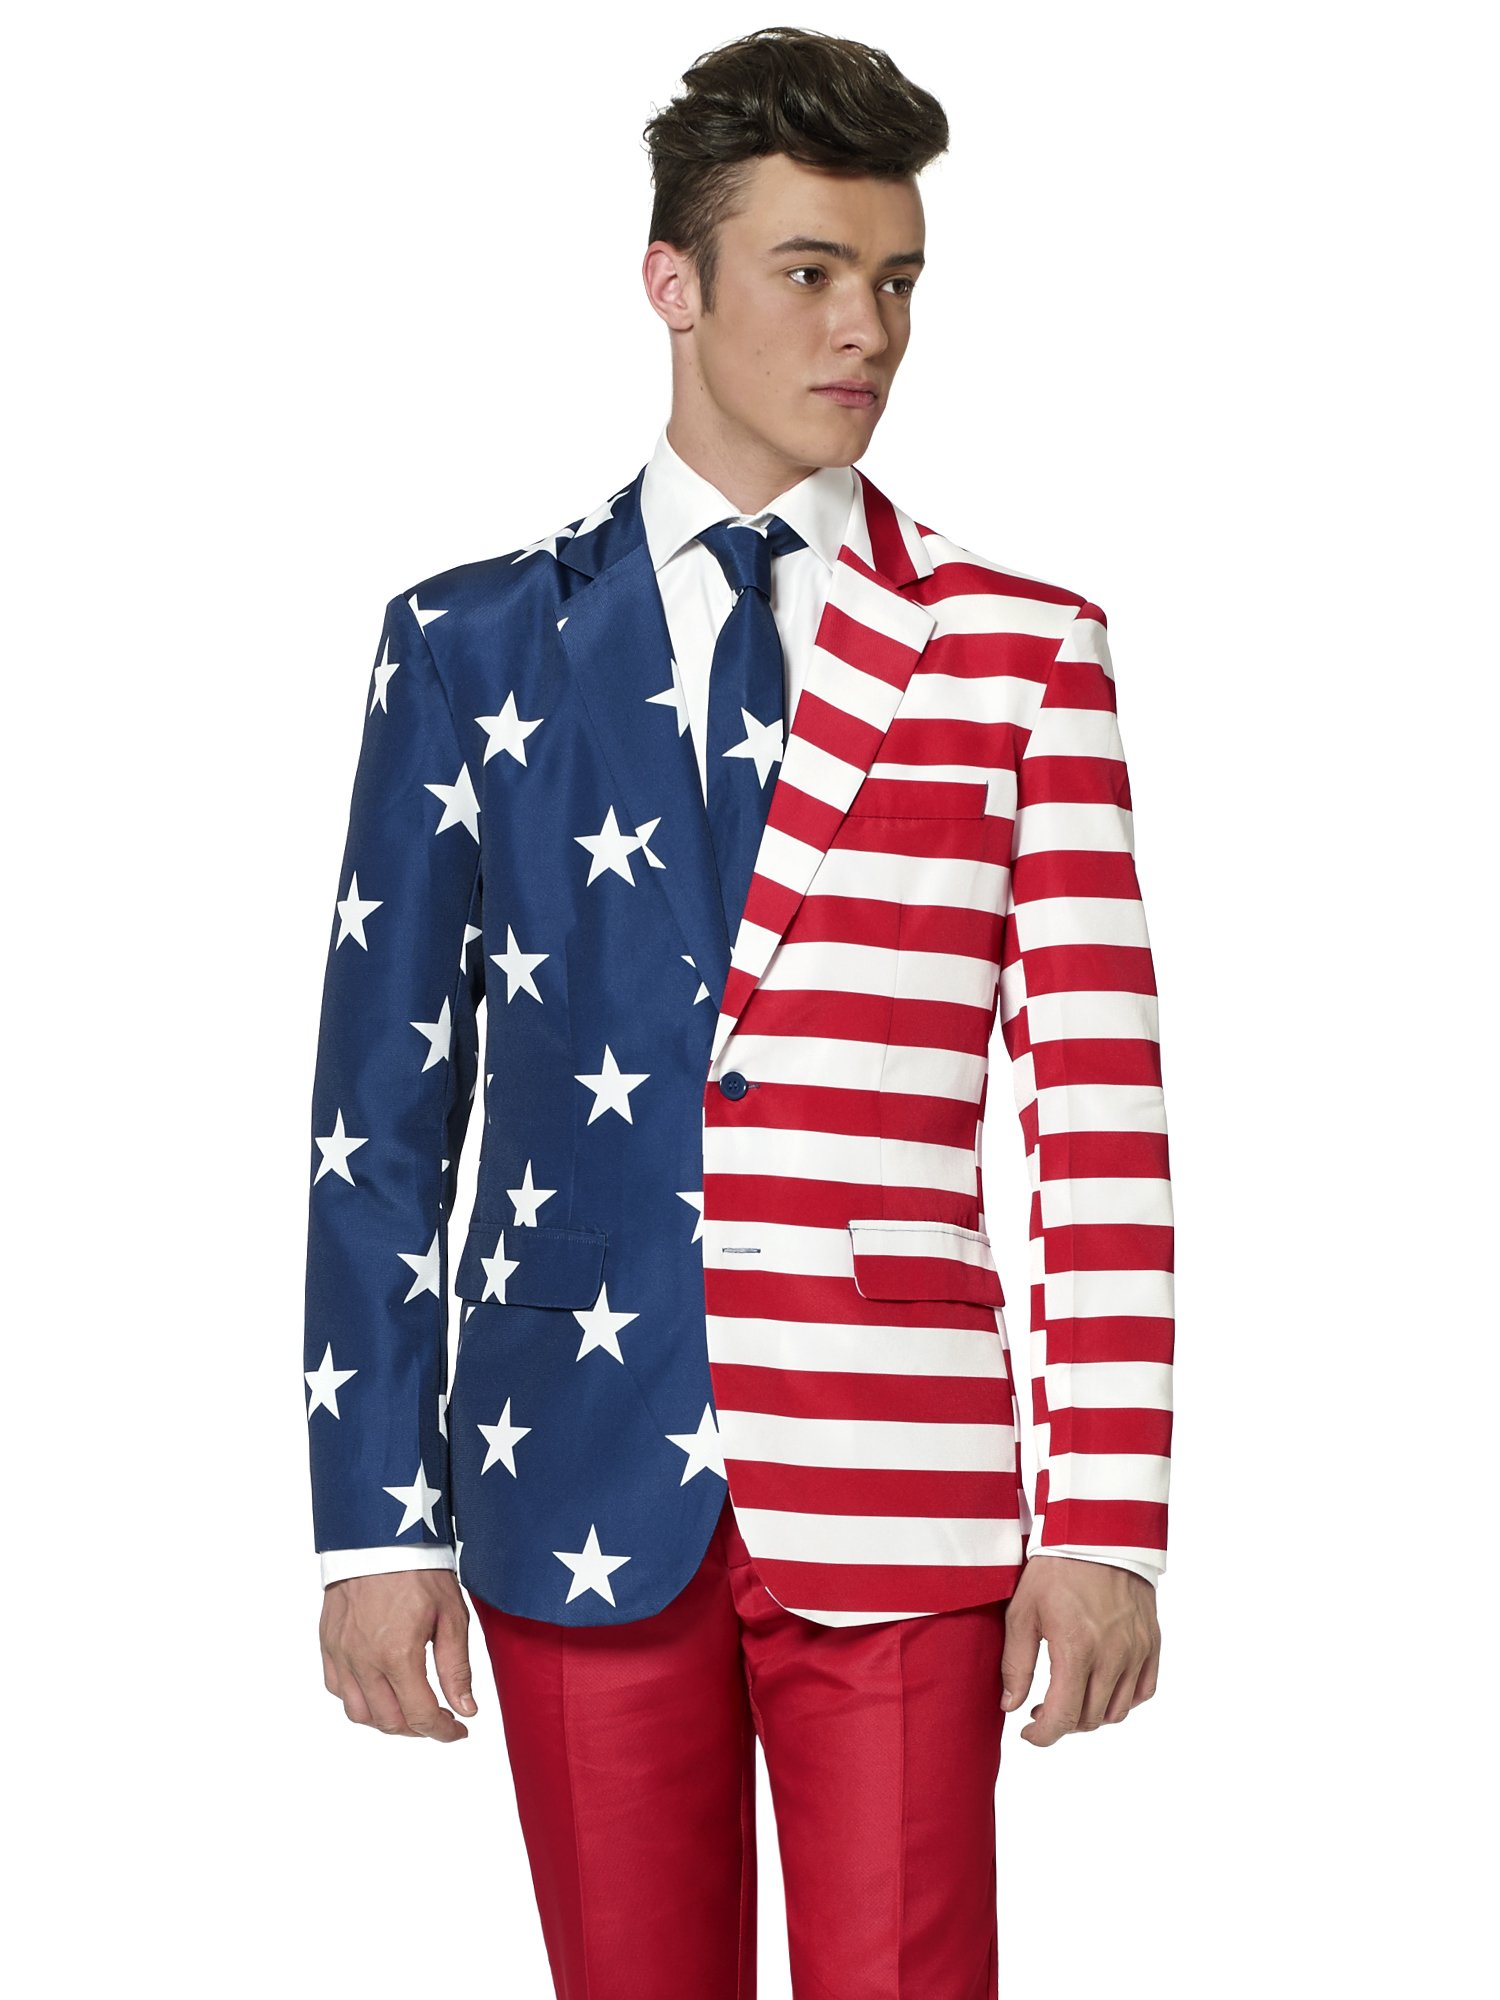 Suitmeister American Flag Suit Outfit - USA 4th of July XL Usa 50-50